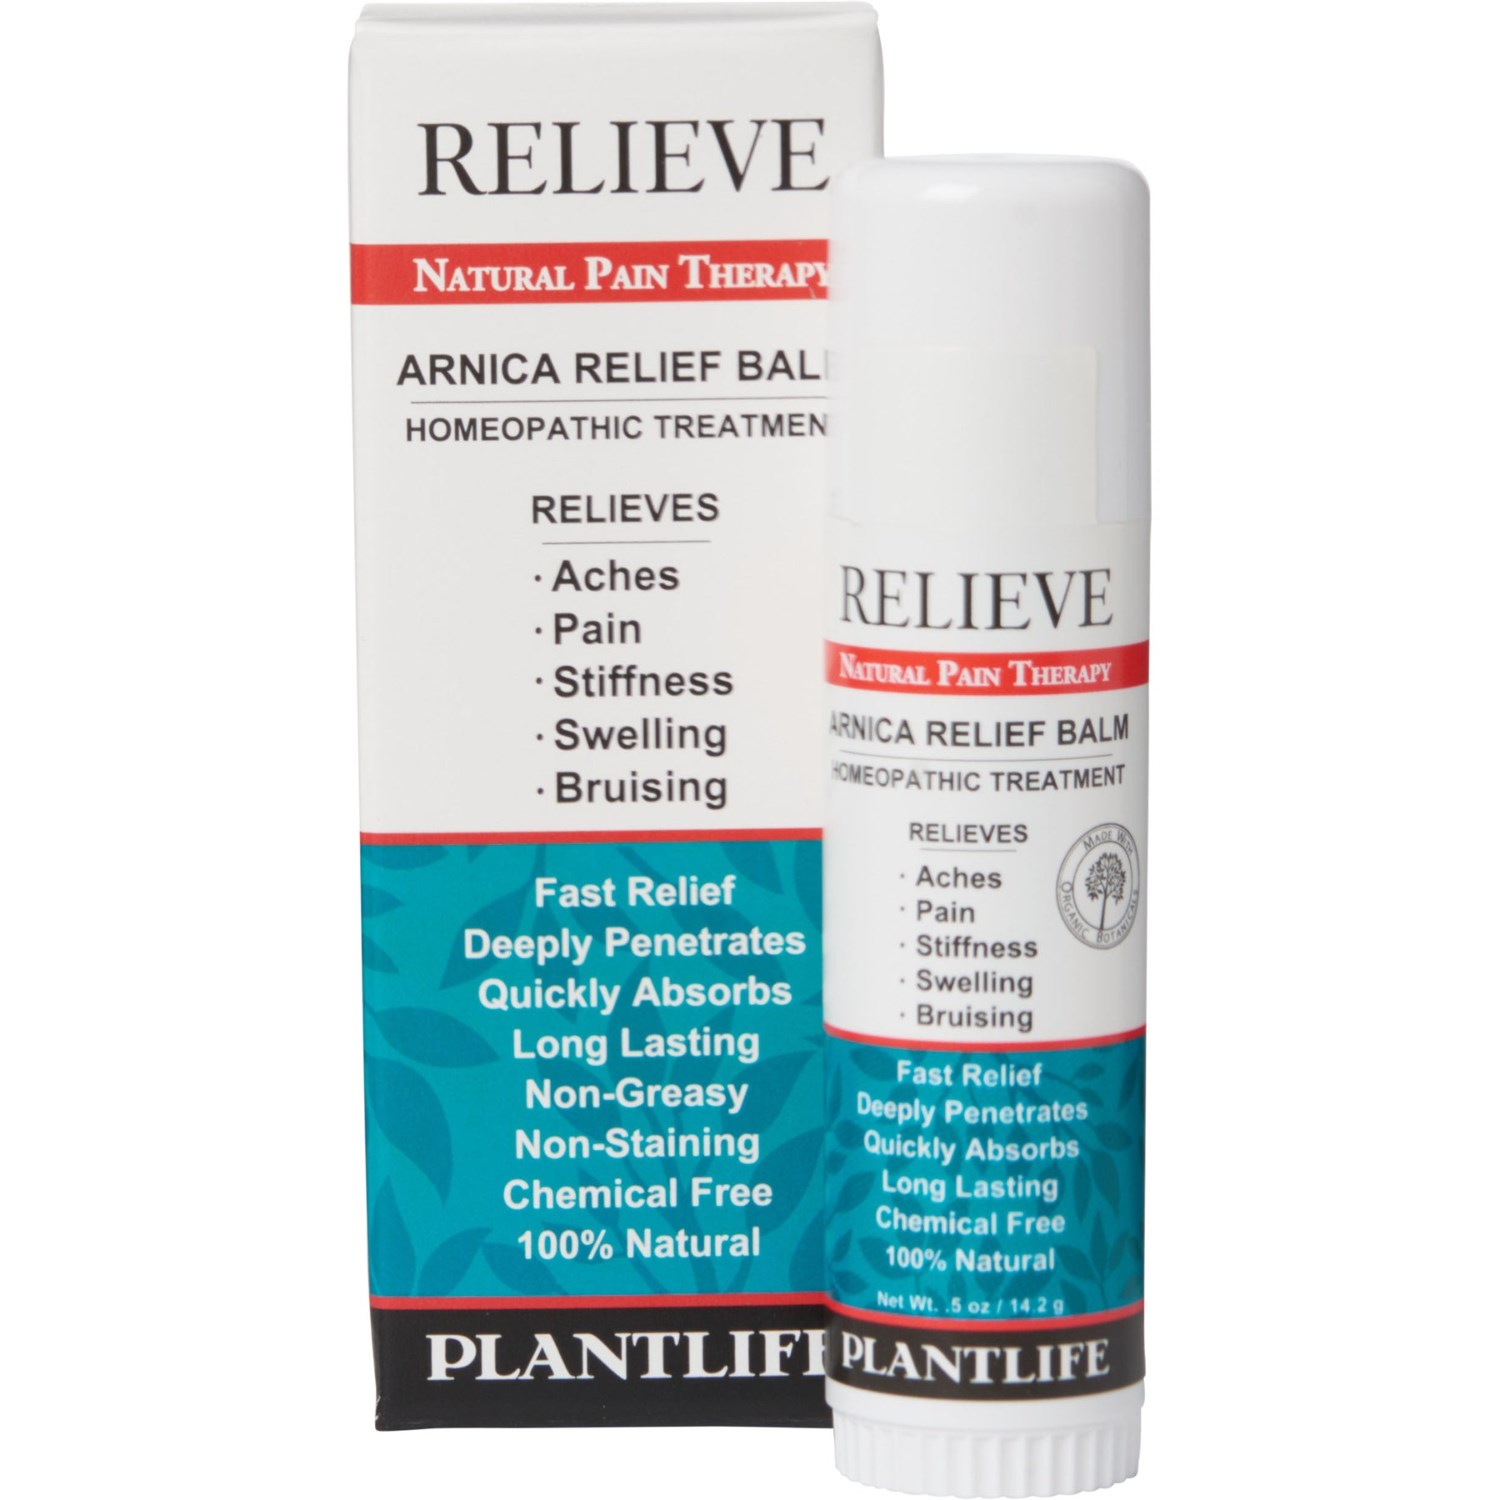 Plant Life Natural Body Care Homeopathic Arnica Pain Relief Balm - 0 5 oz